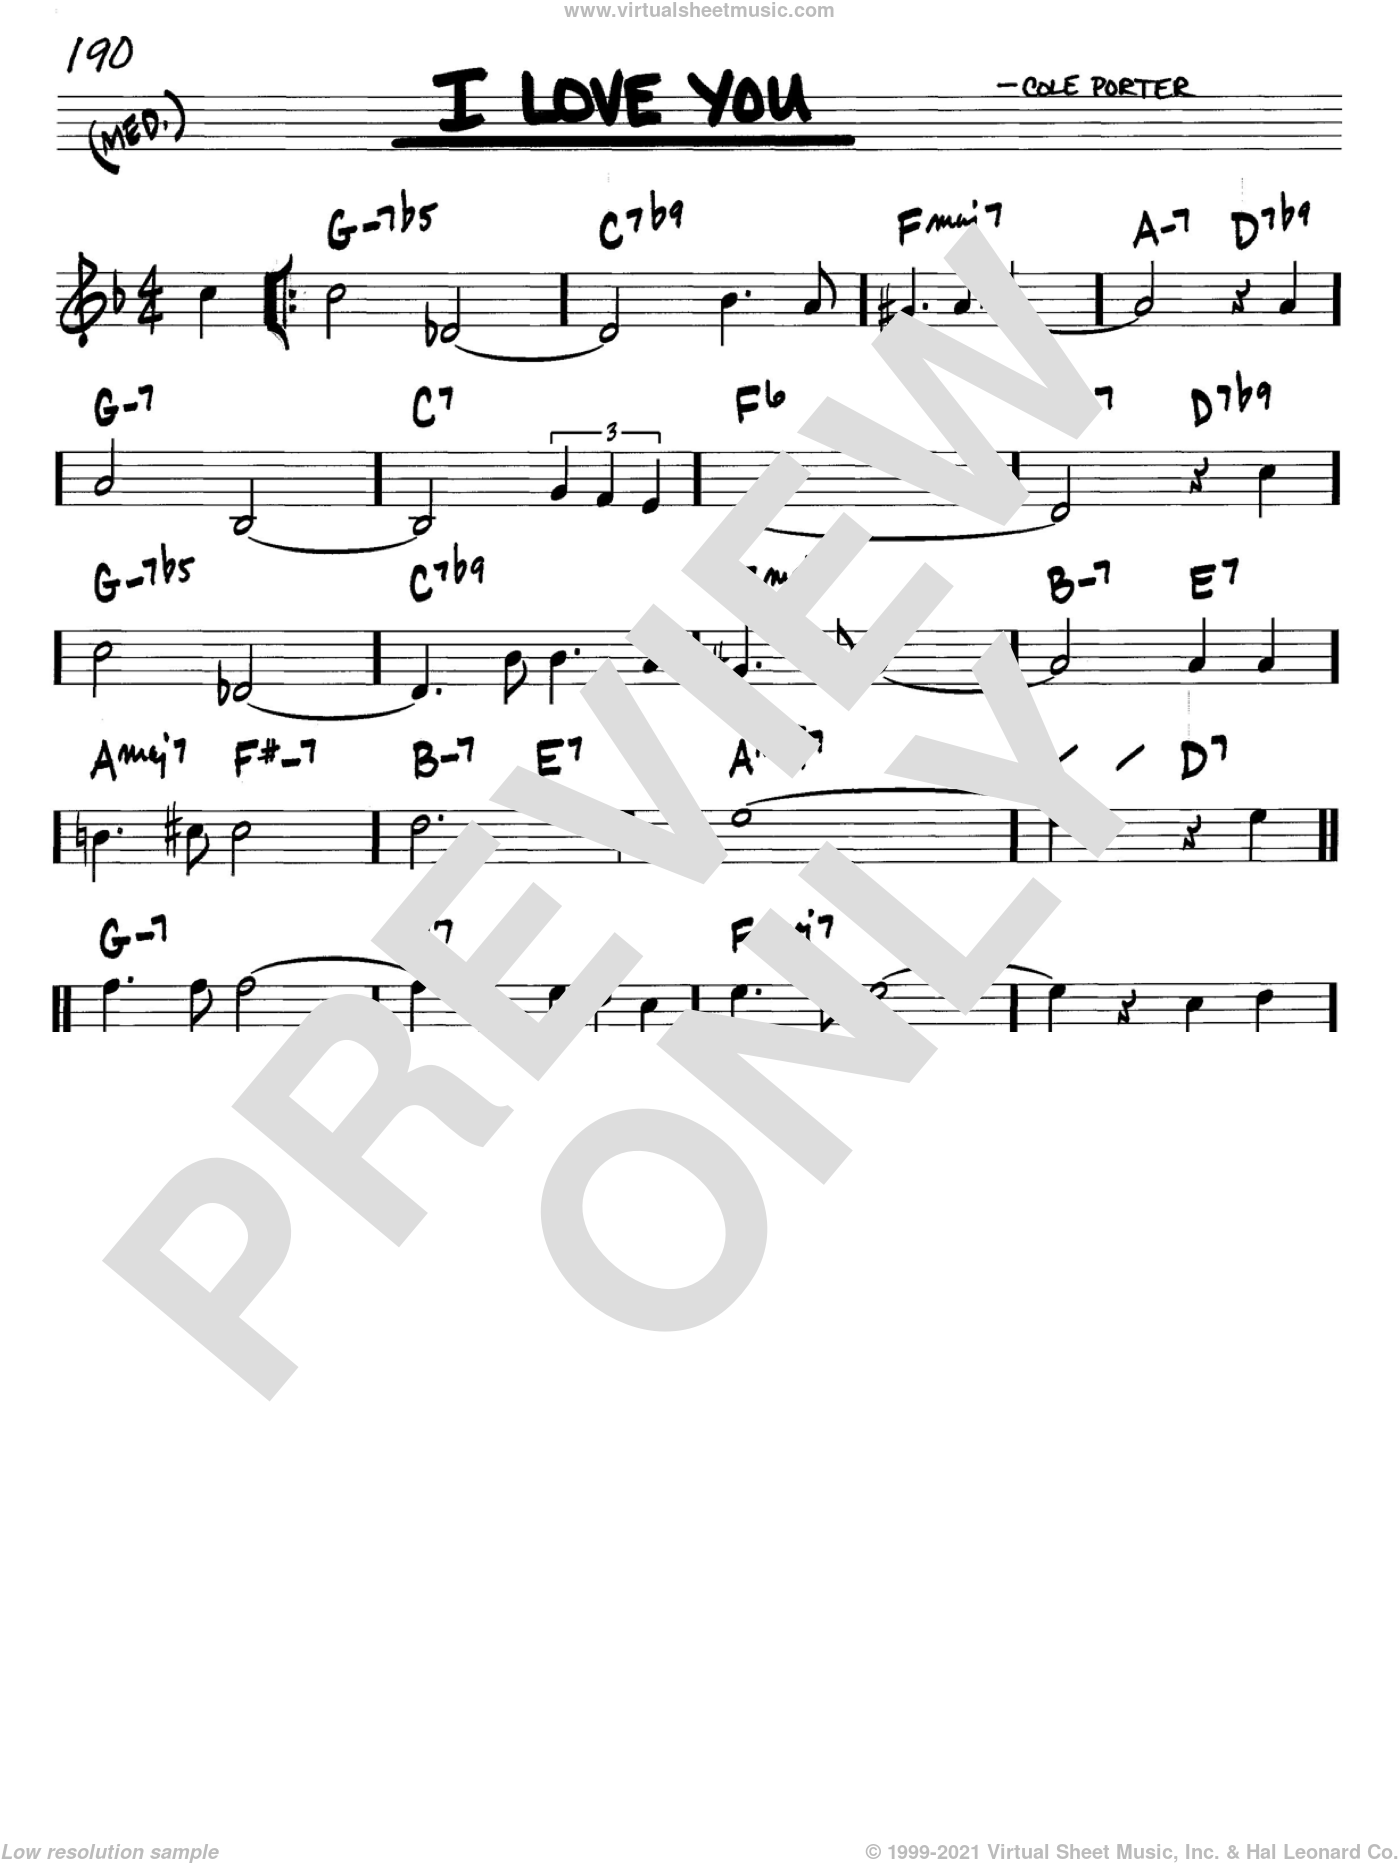 I Love You sheet music for voice and other instruments (C) by Cole Porter. Score Image Preview.